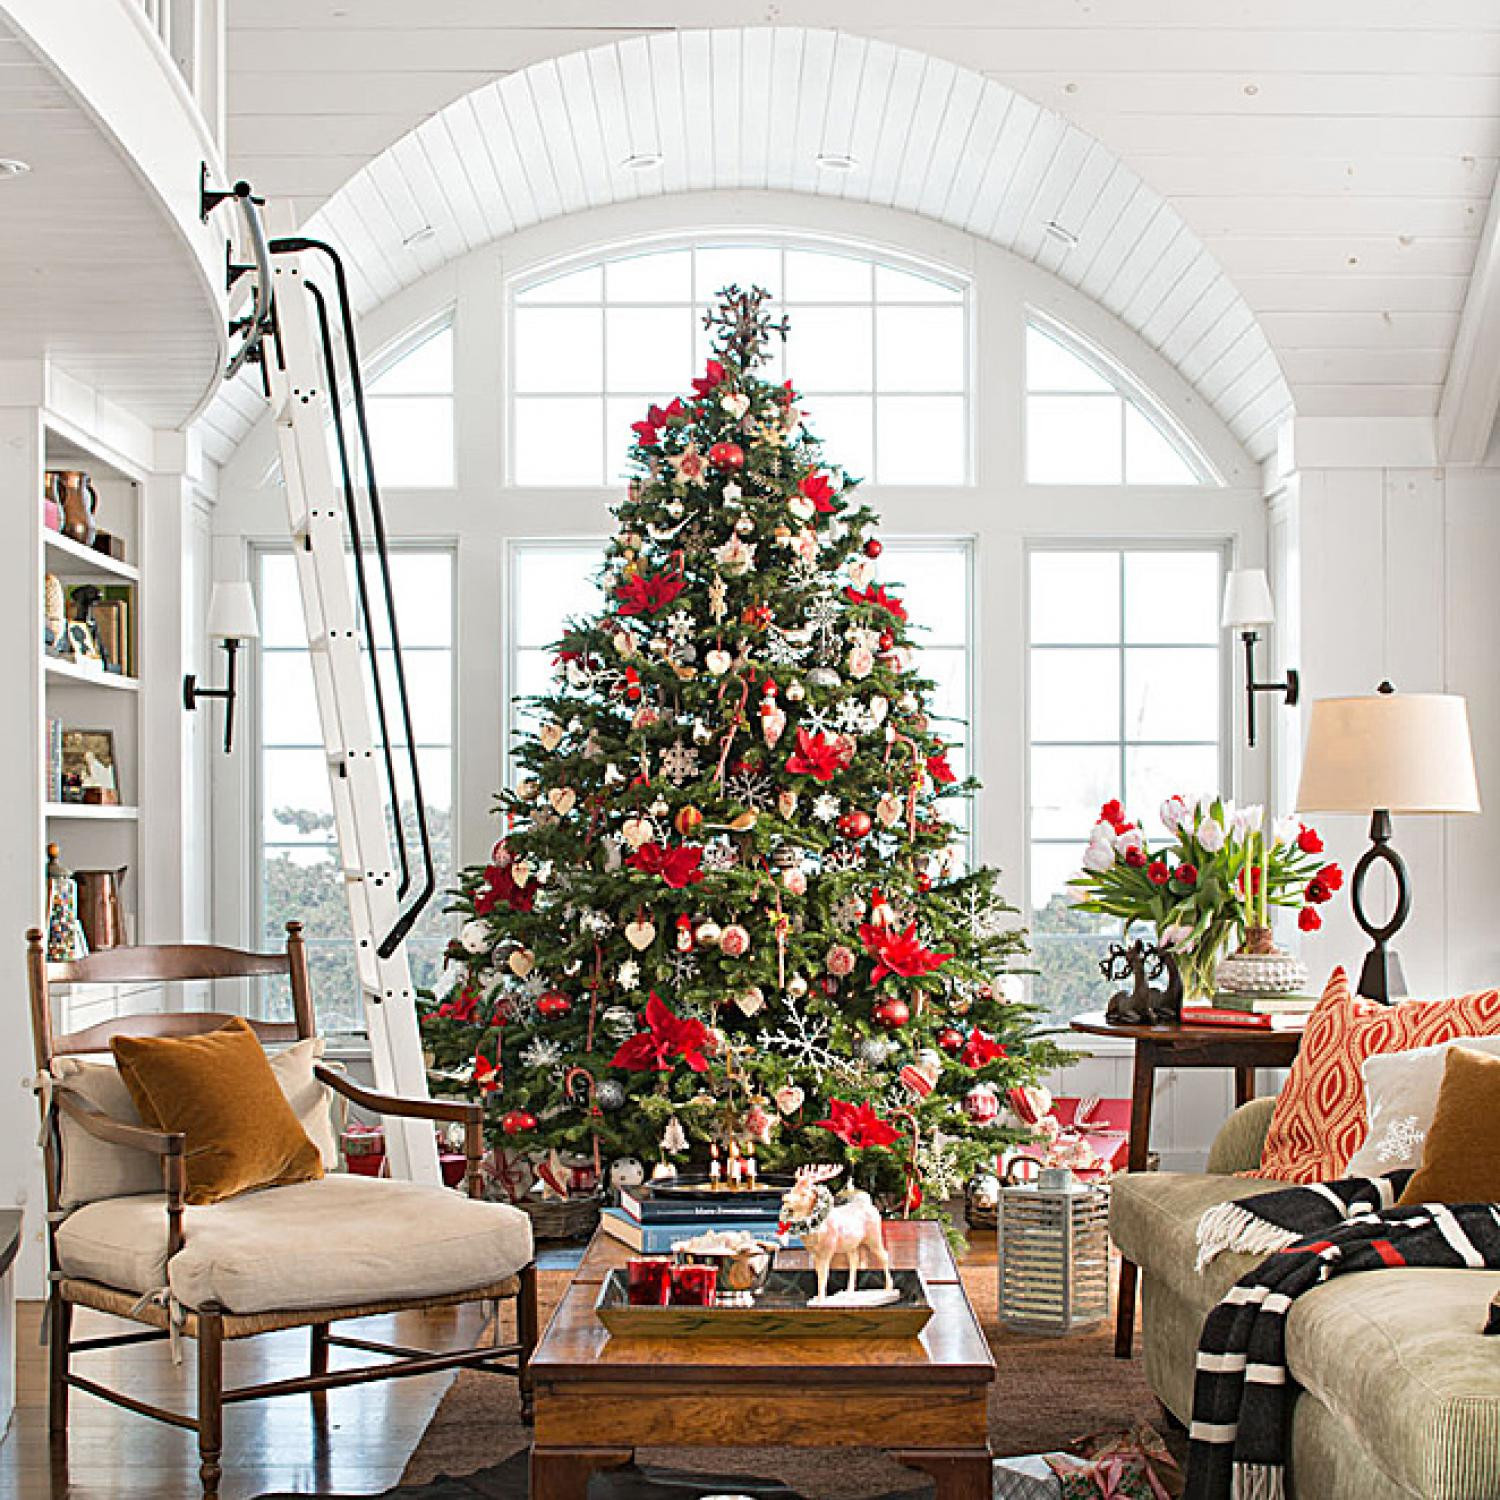 Christmas Decorators Luxury Snowy Vermont Home Ready for Christmas Of Amazing 48 Models Christmas Decorators